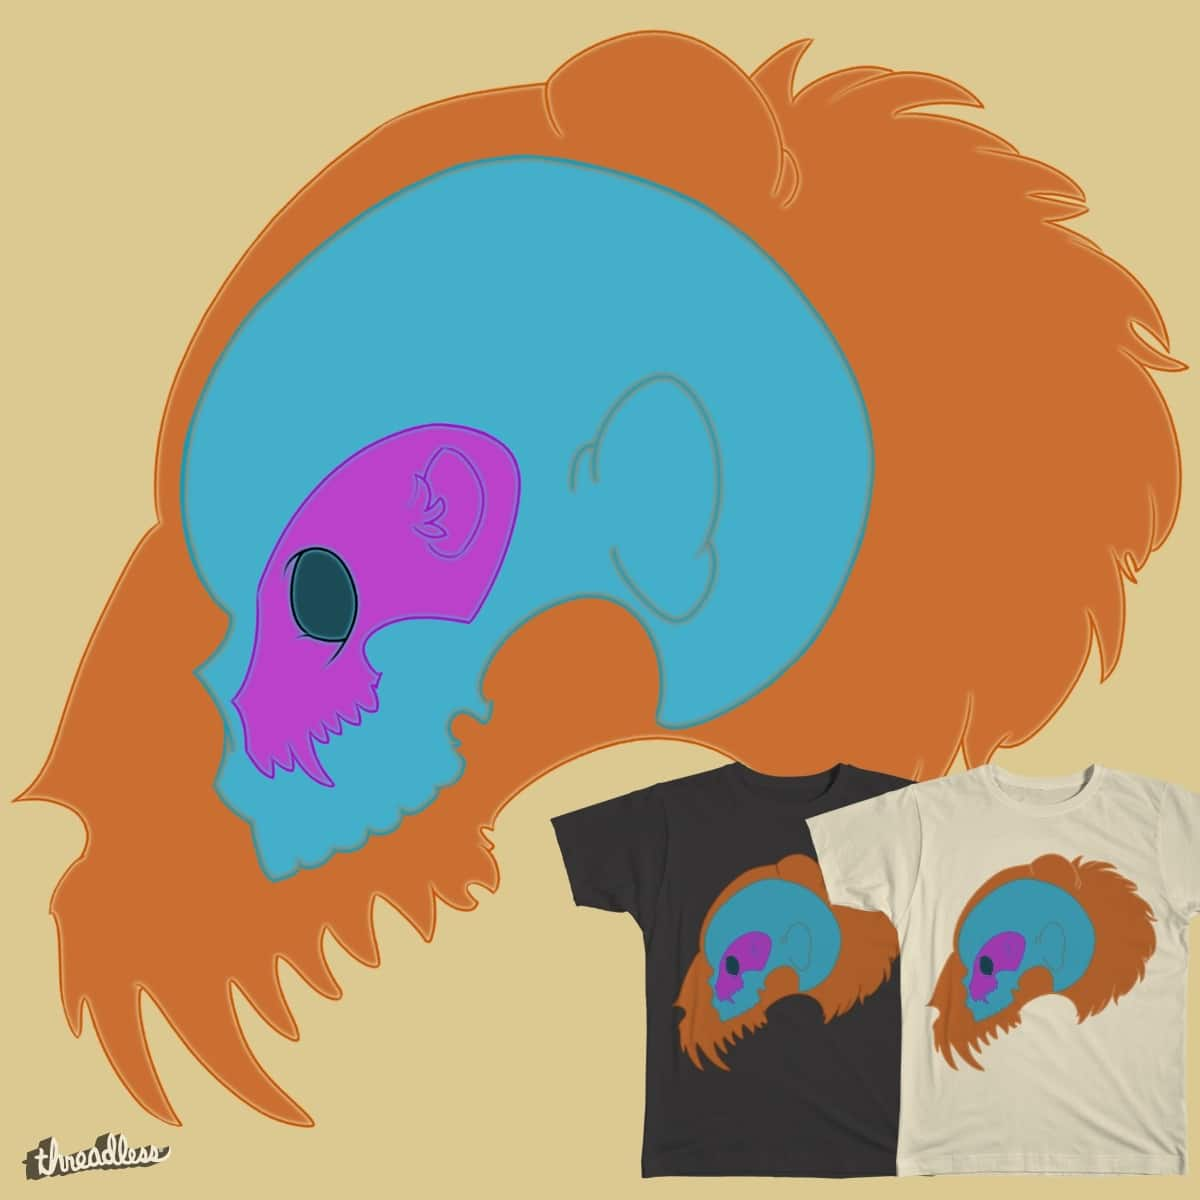 NumbSkull by dominiquedc on Threadless